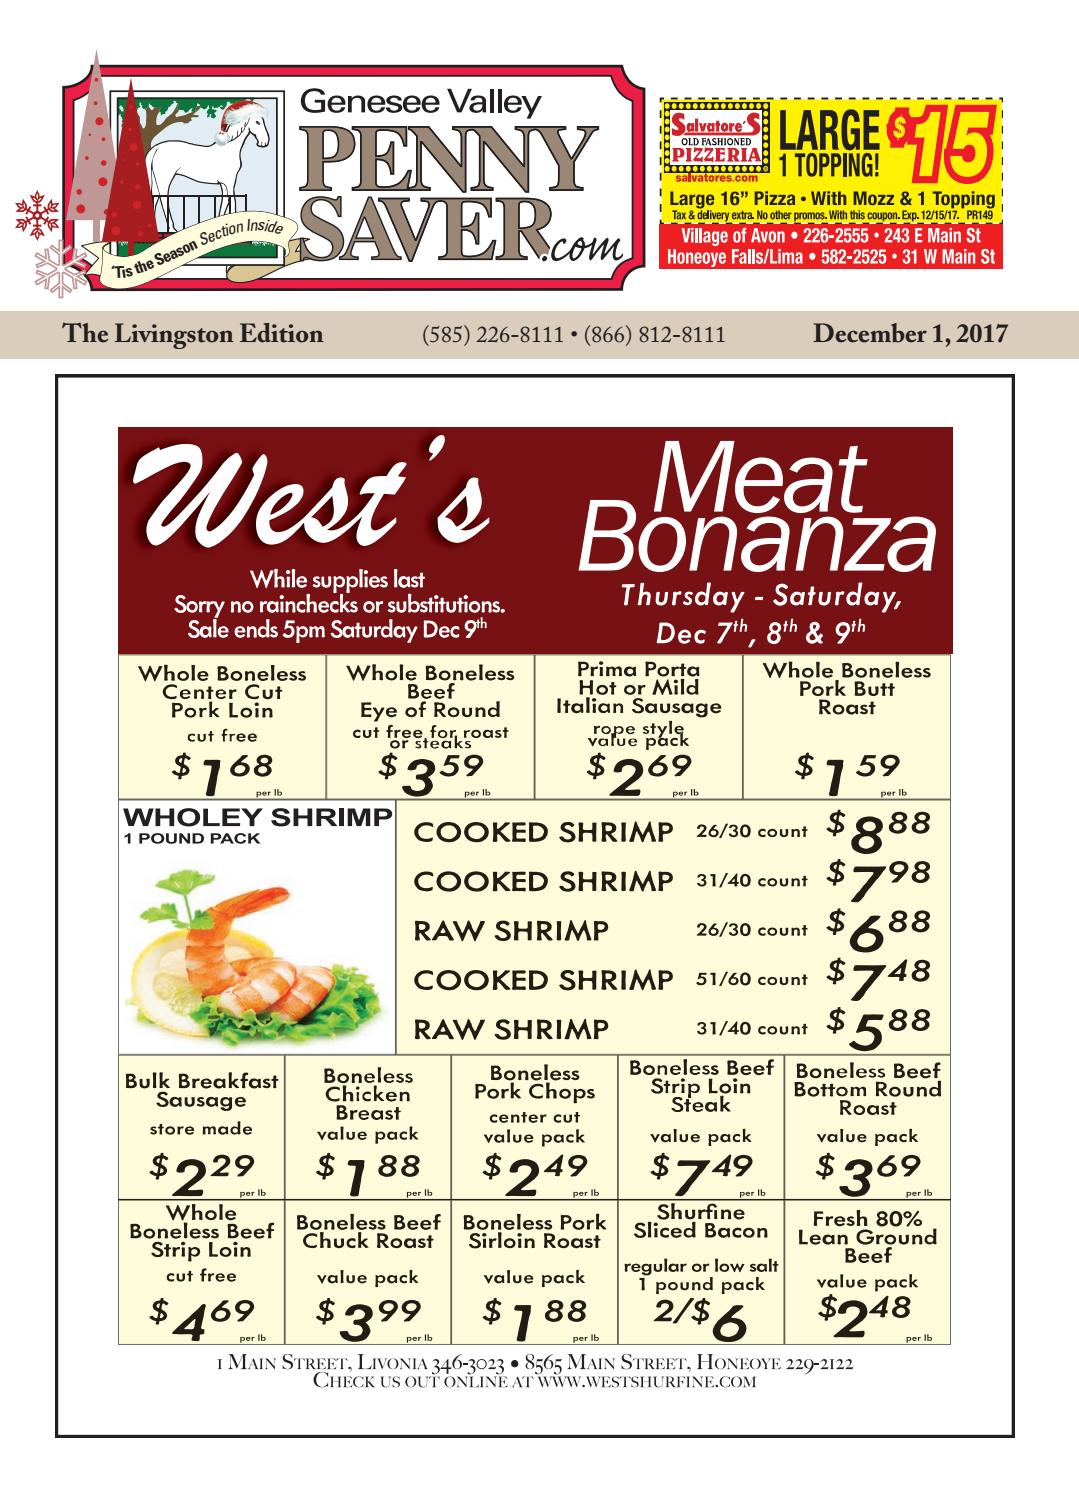 Livingston Edition of The Genesee Valley Penny Saver 12/1/17 by ...